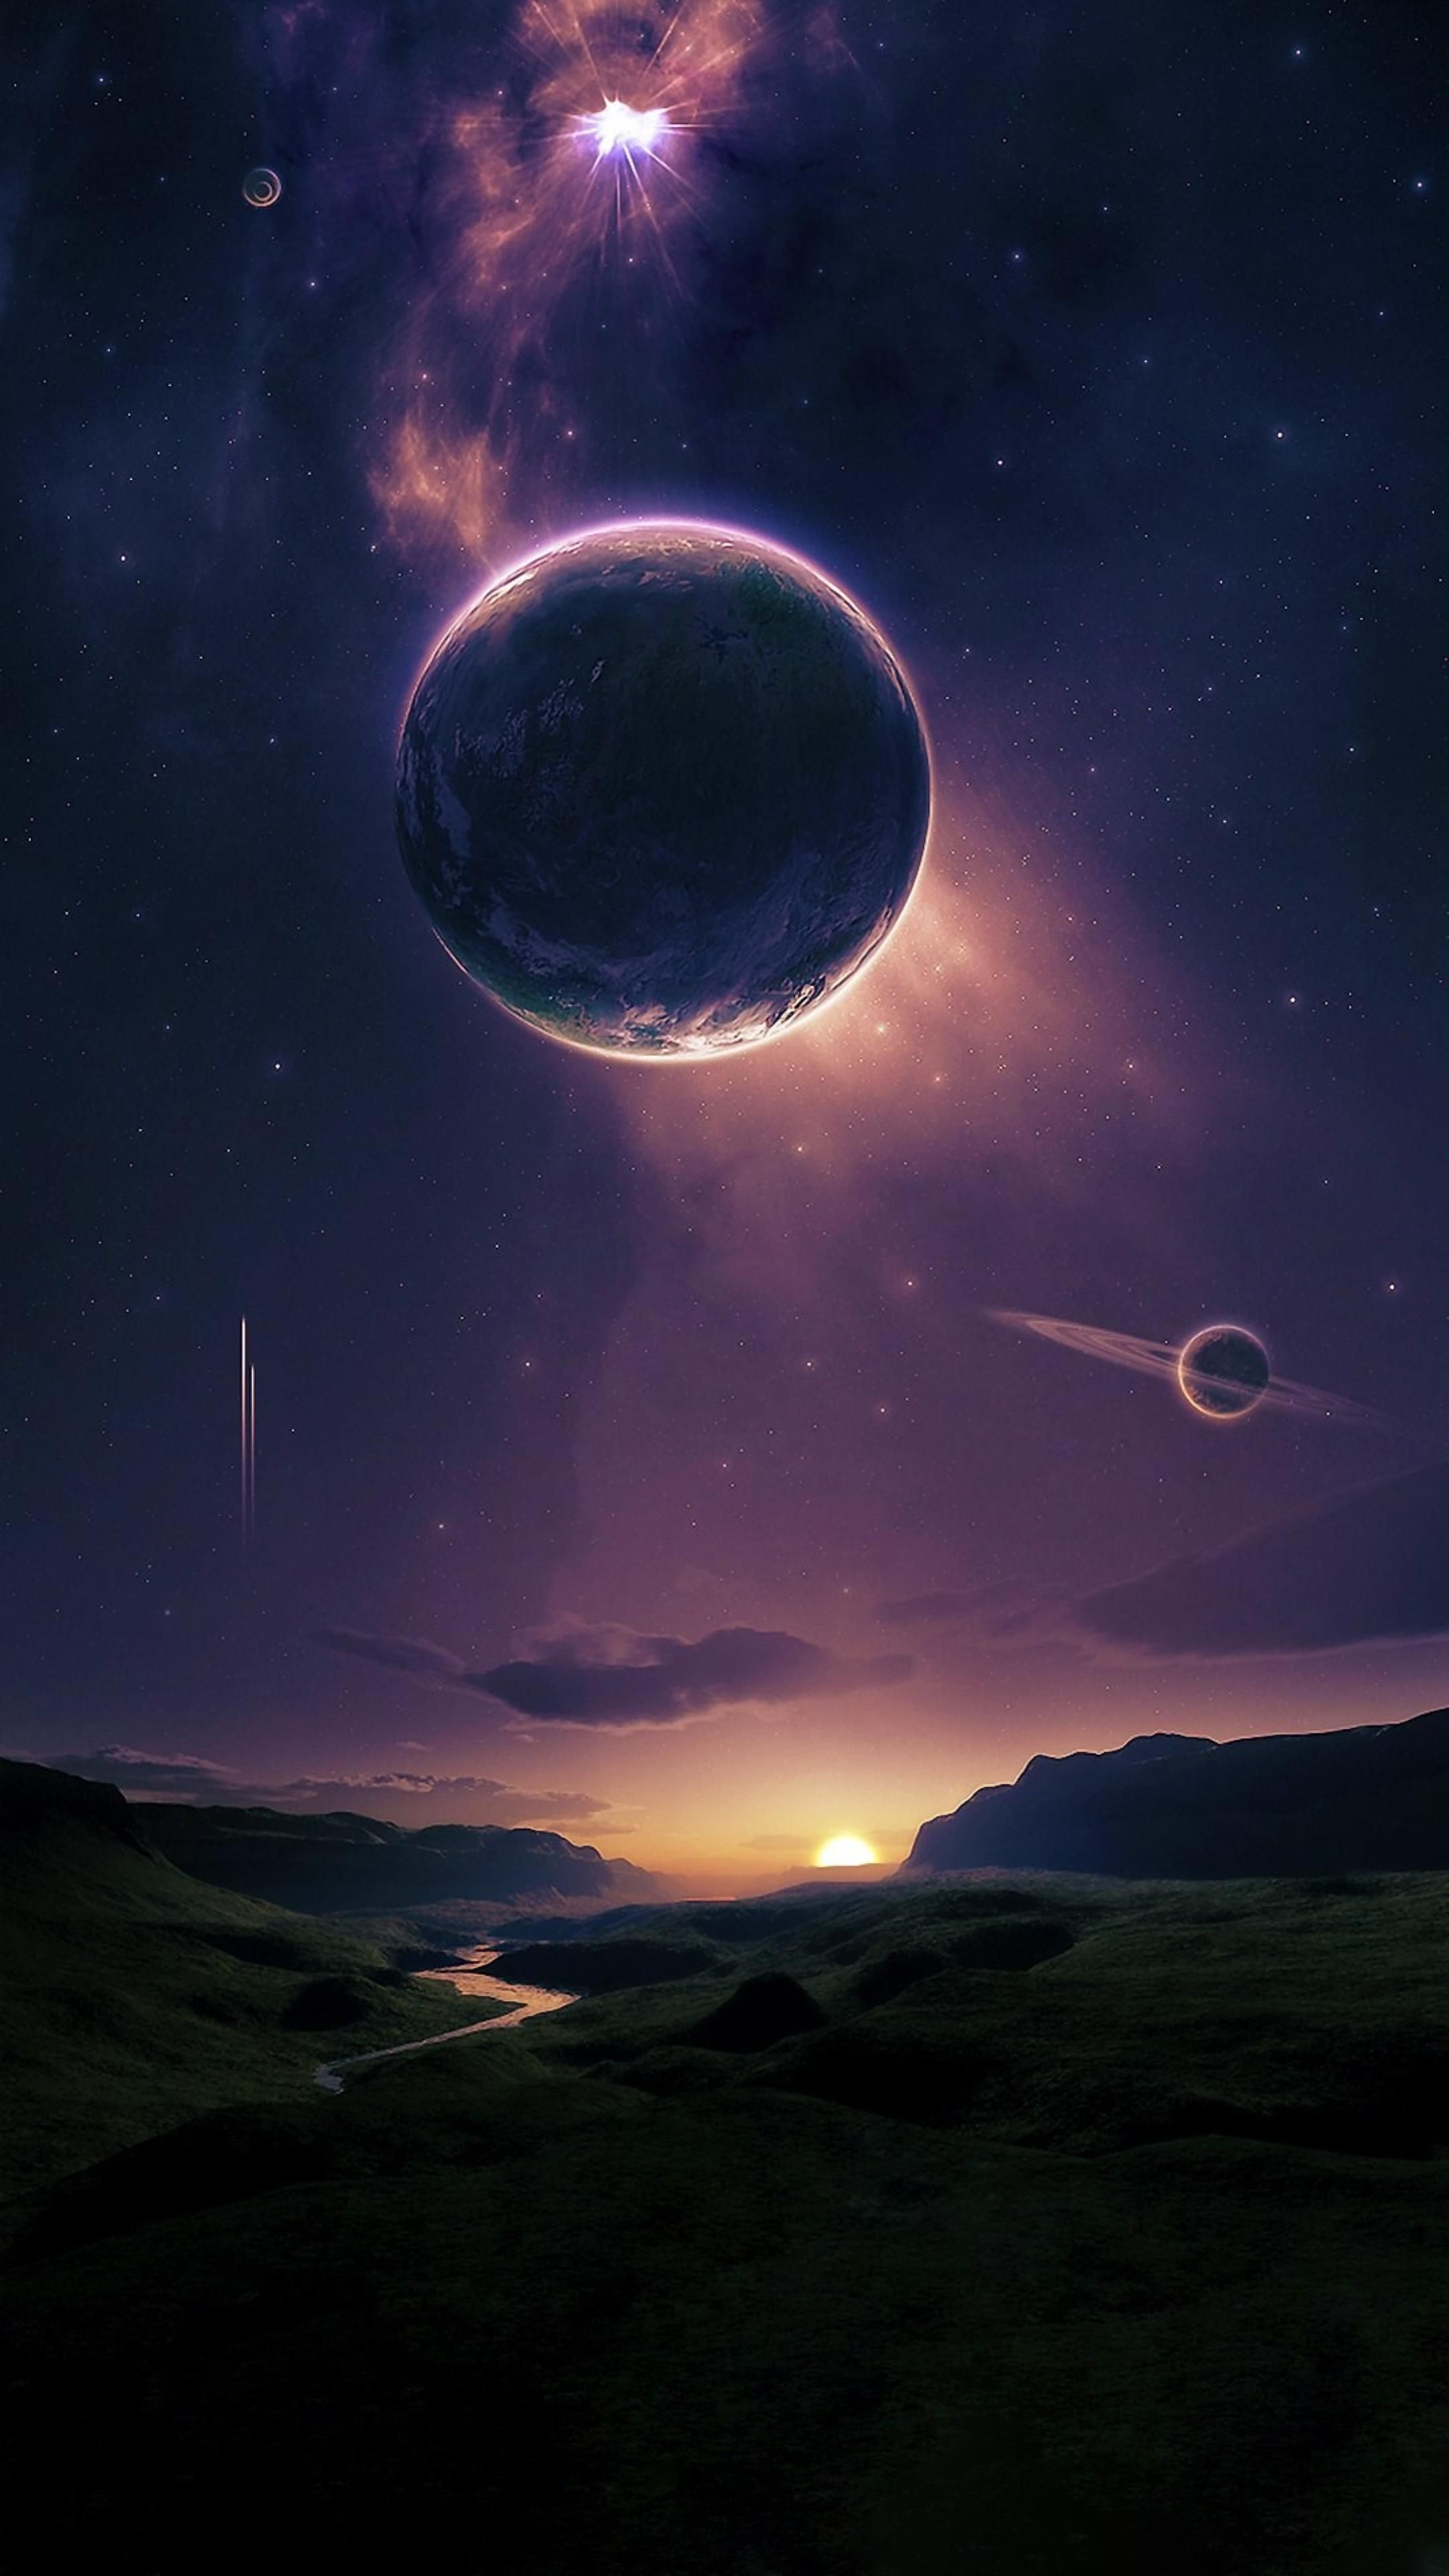 Space 4k Wallpaper 7 Iphone Wallpaper Sky Sci Fi Wallpaper Fantasy Landscape